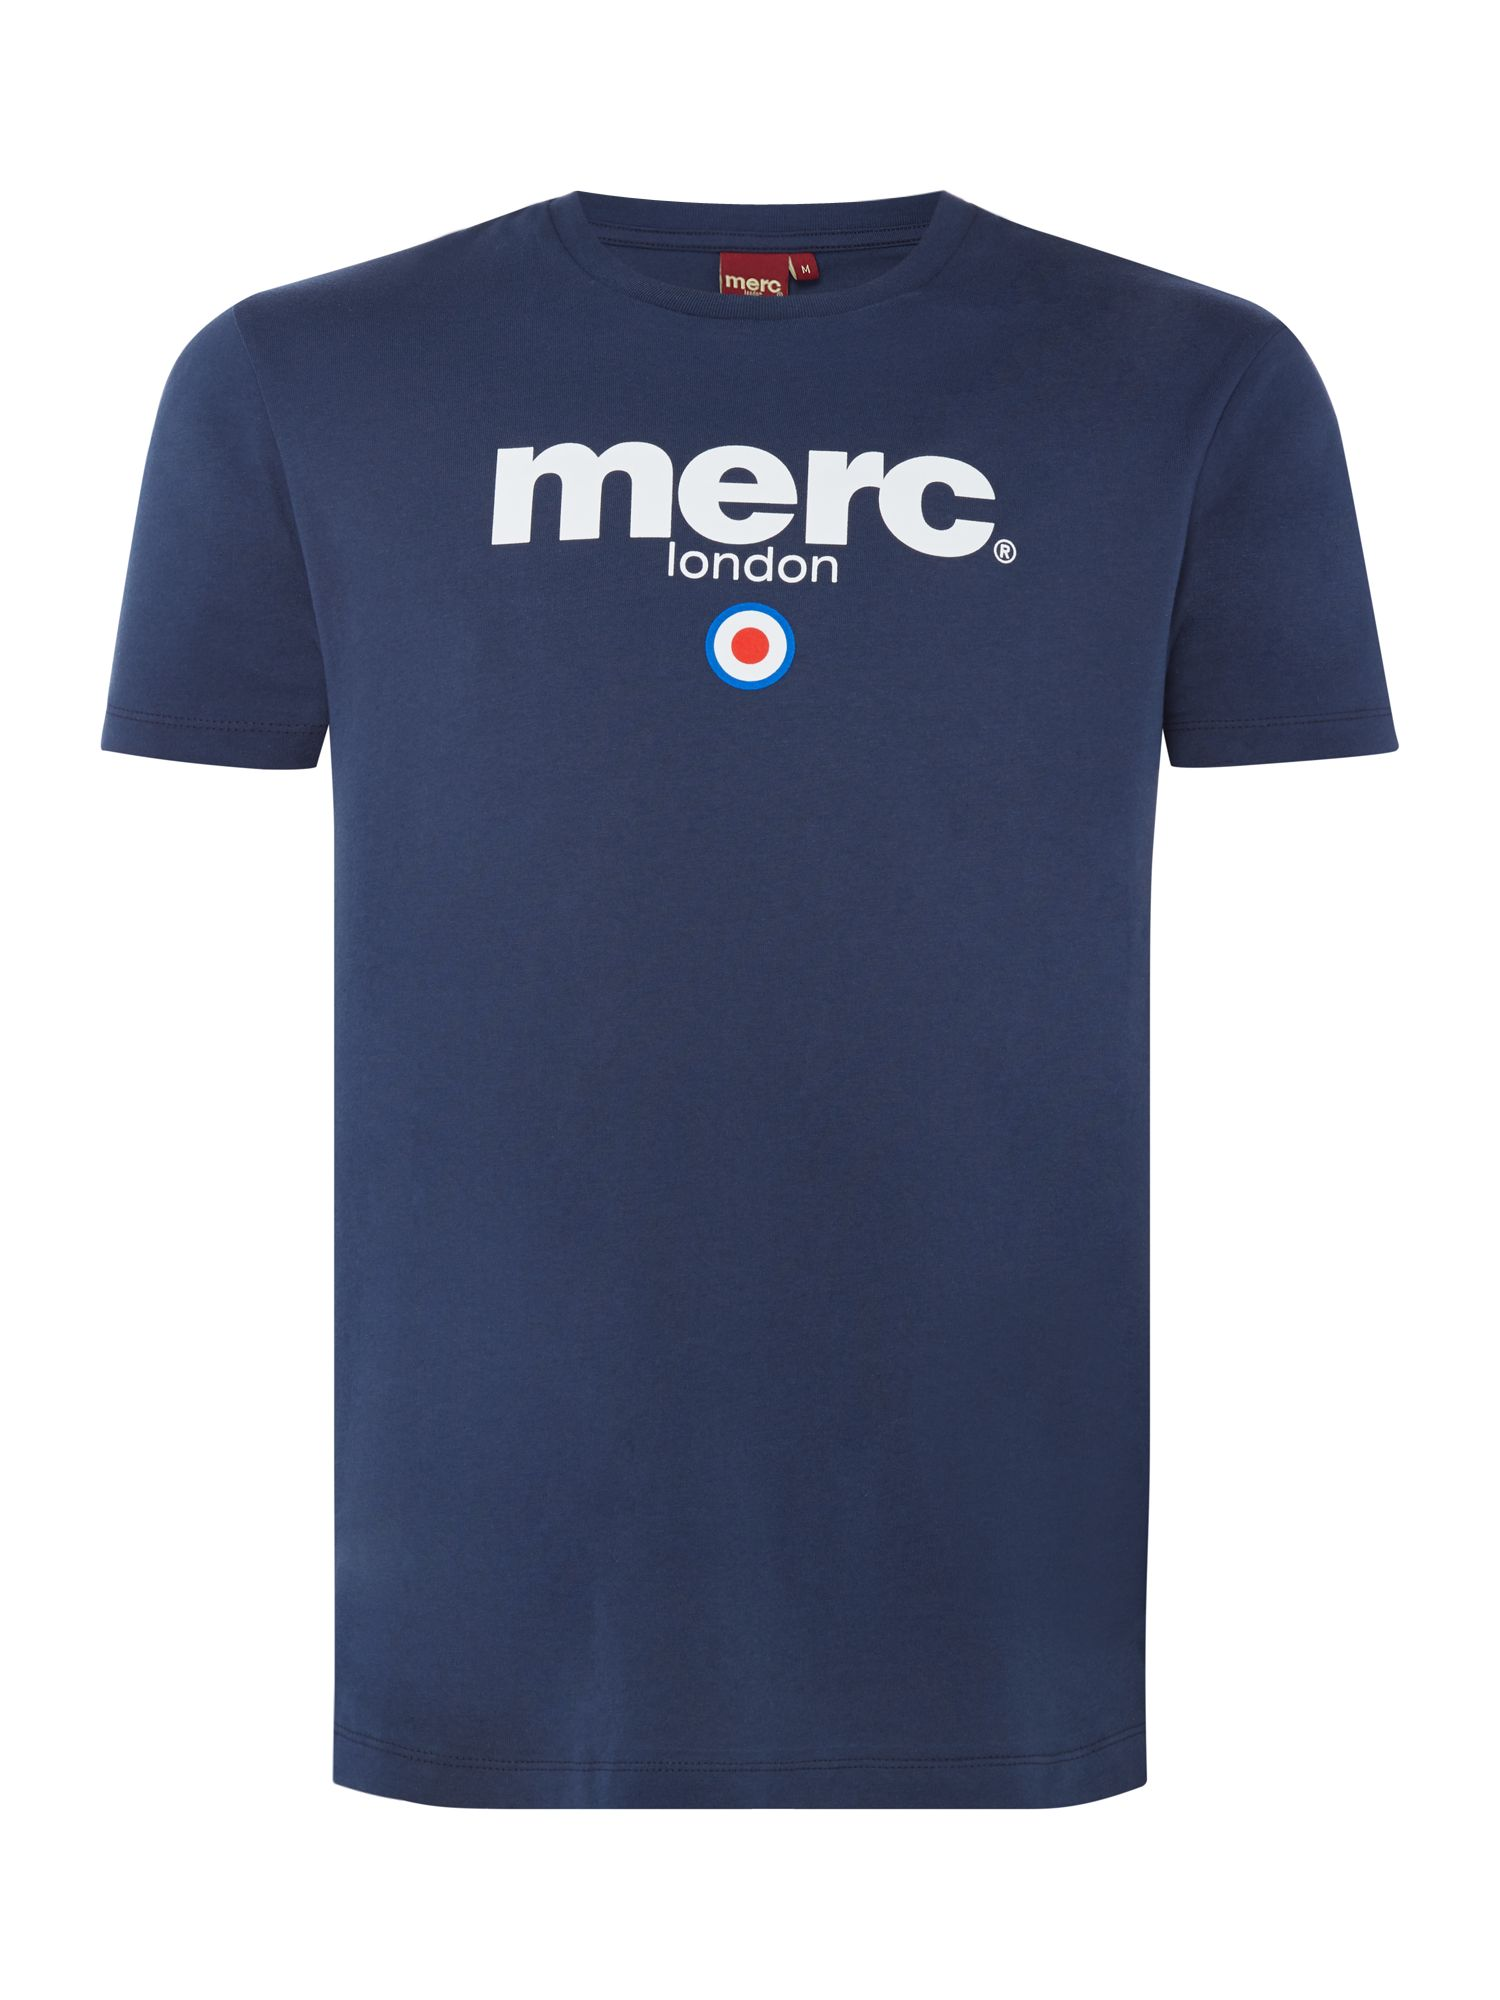 Men's Merc London Target Brighton T-Shirt, Blue